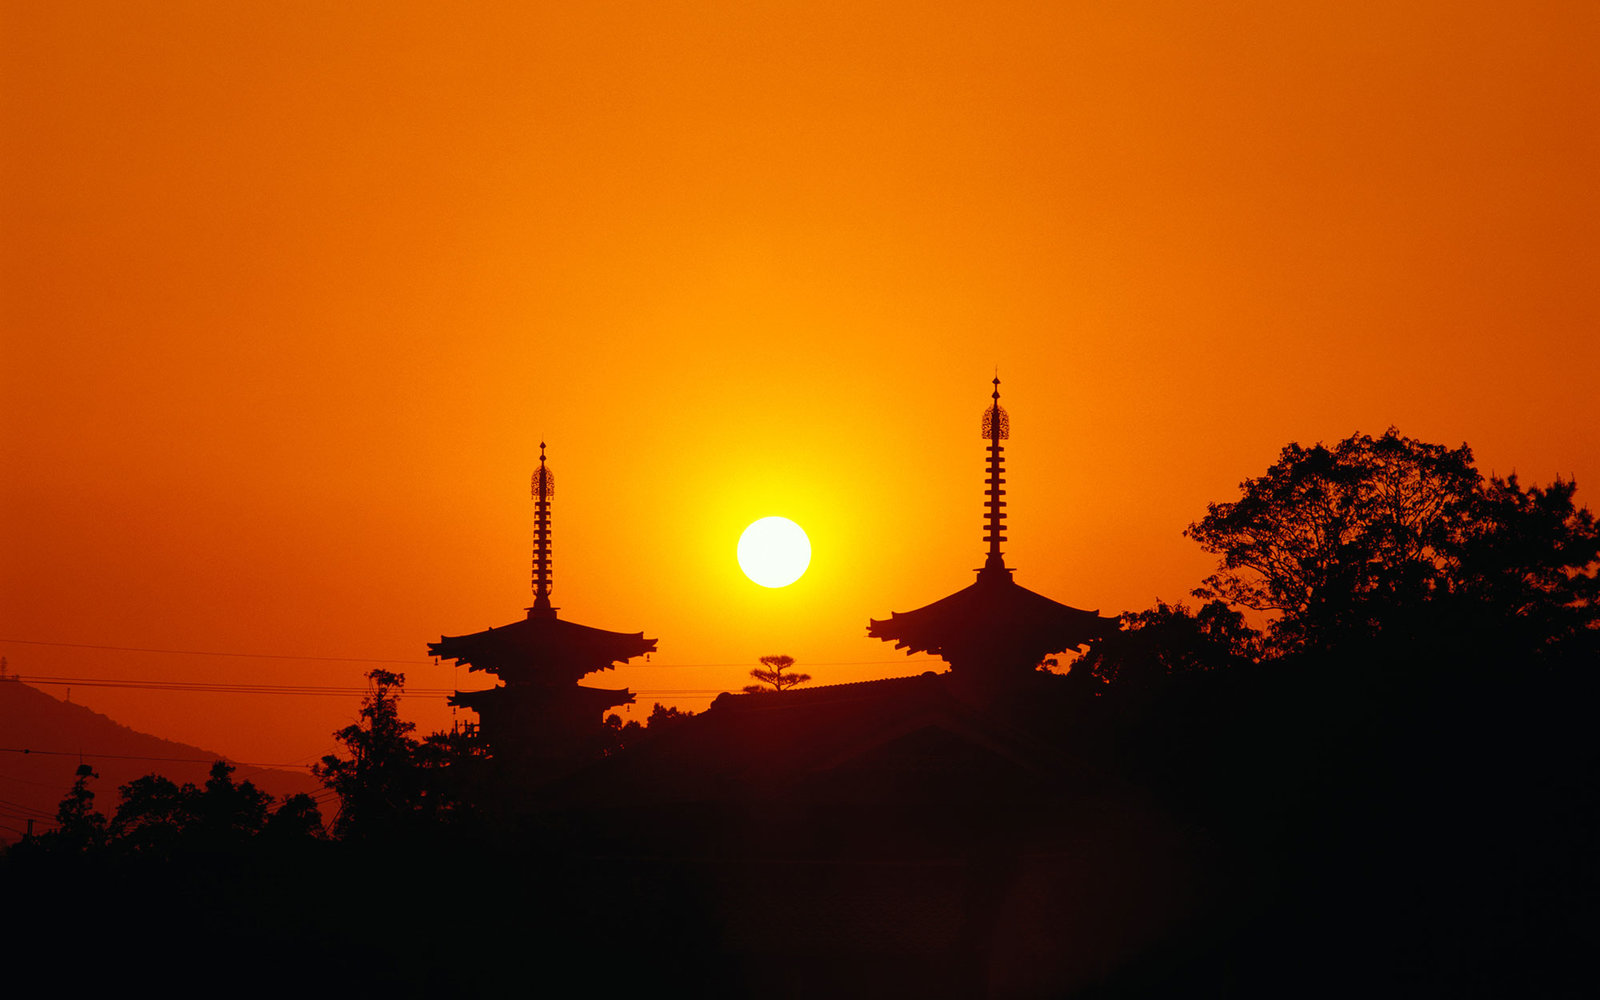 Japan, Nara Prefecture, Nara, Yakushiji Temple, sunrise